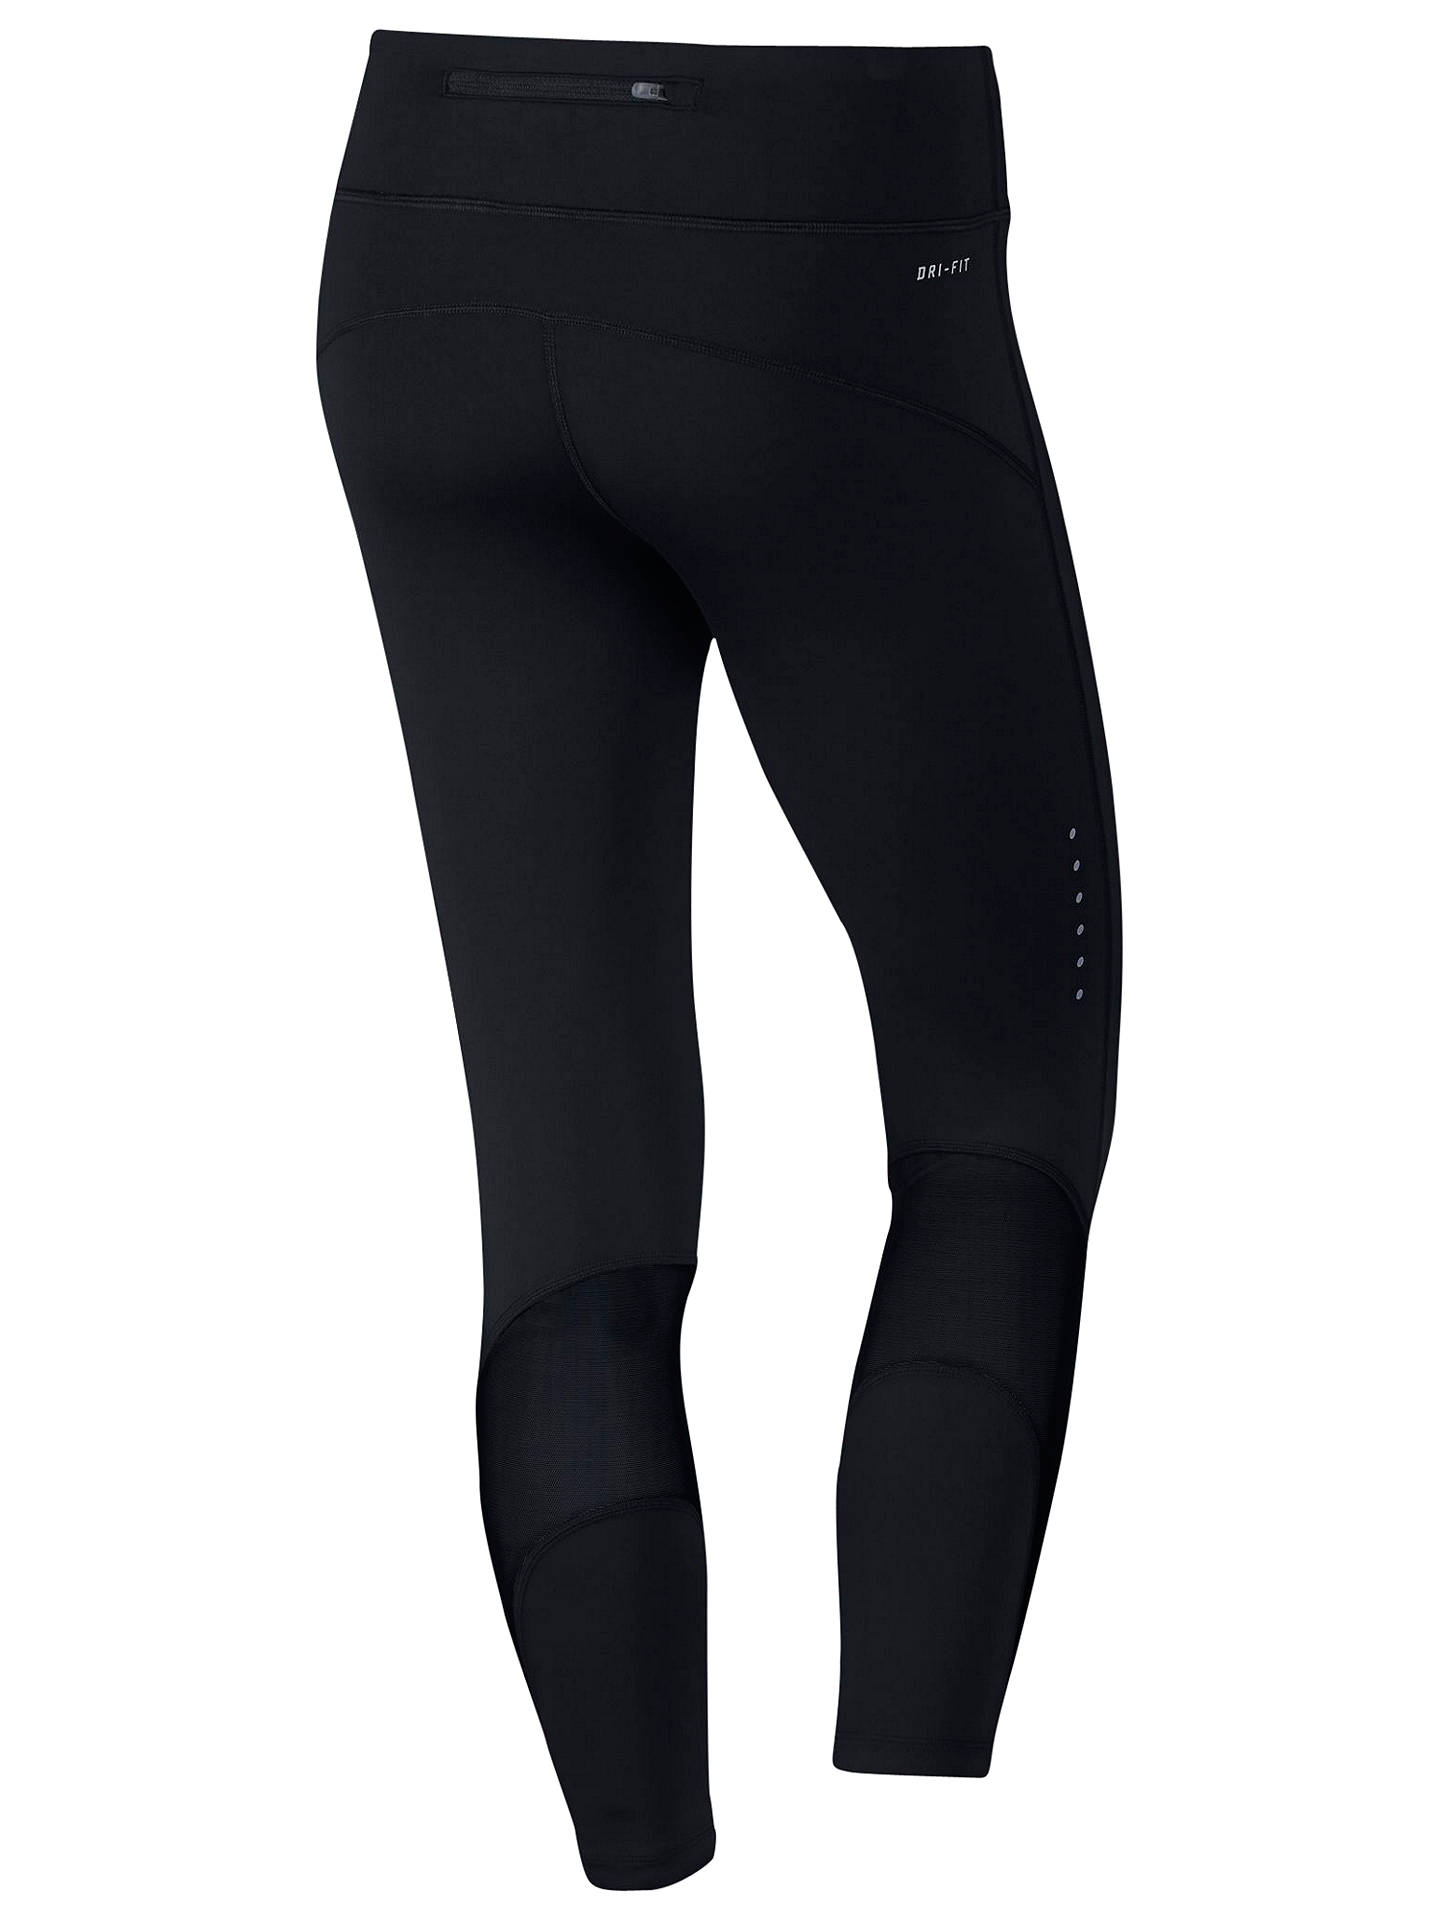 Nike Womens Dri FIT Epic Run Cropped Running Tights